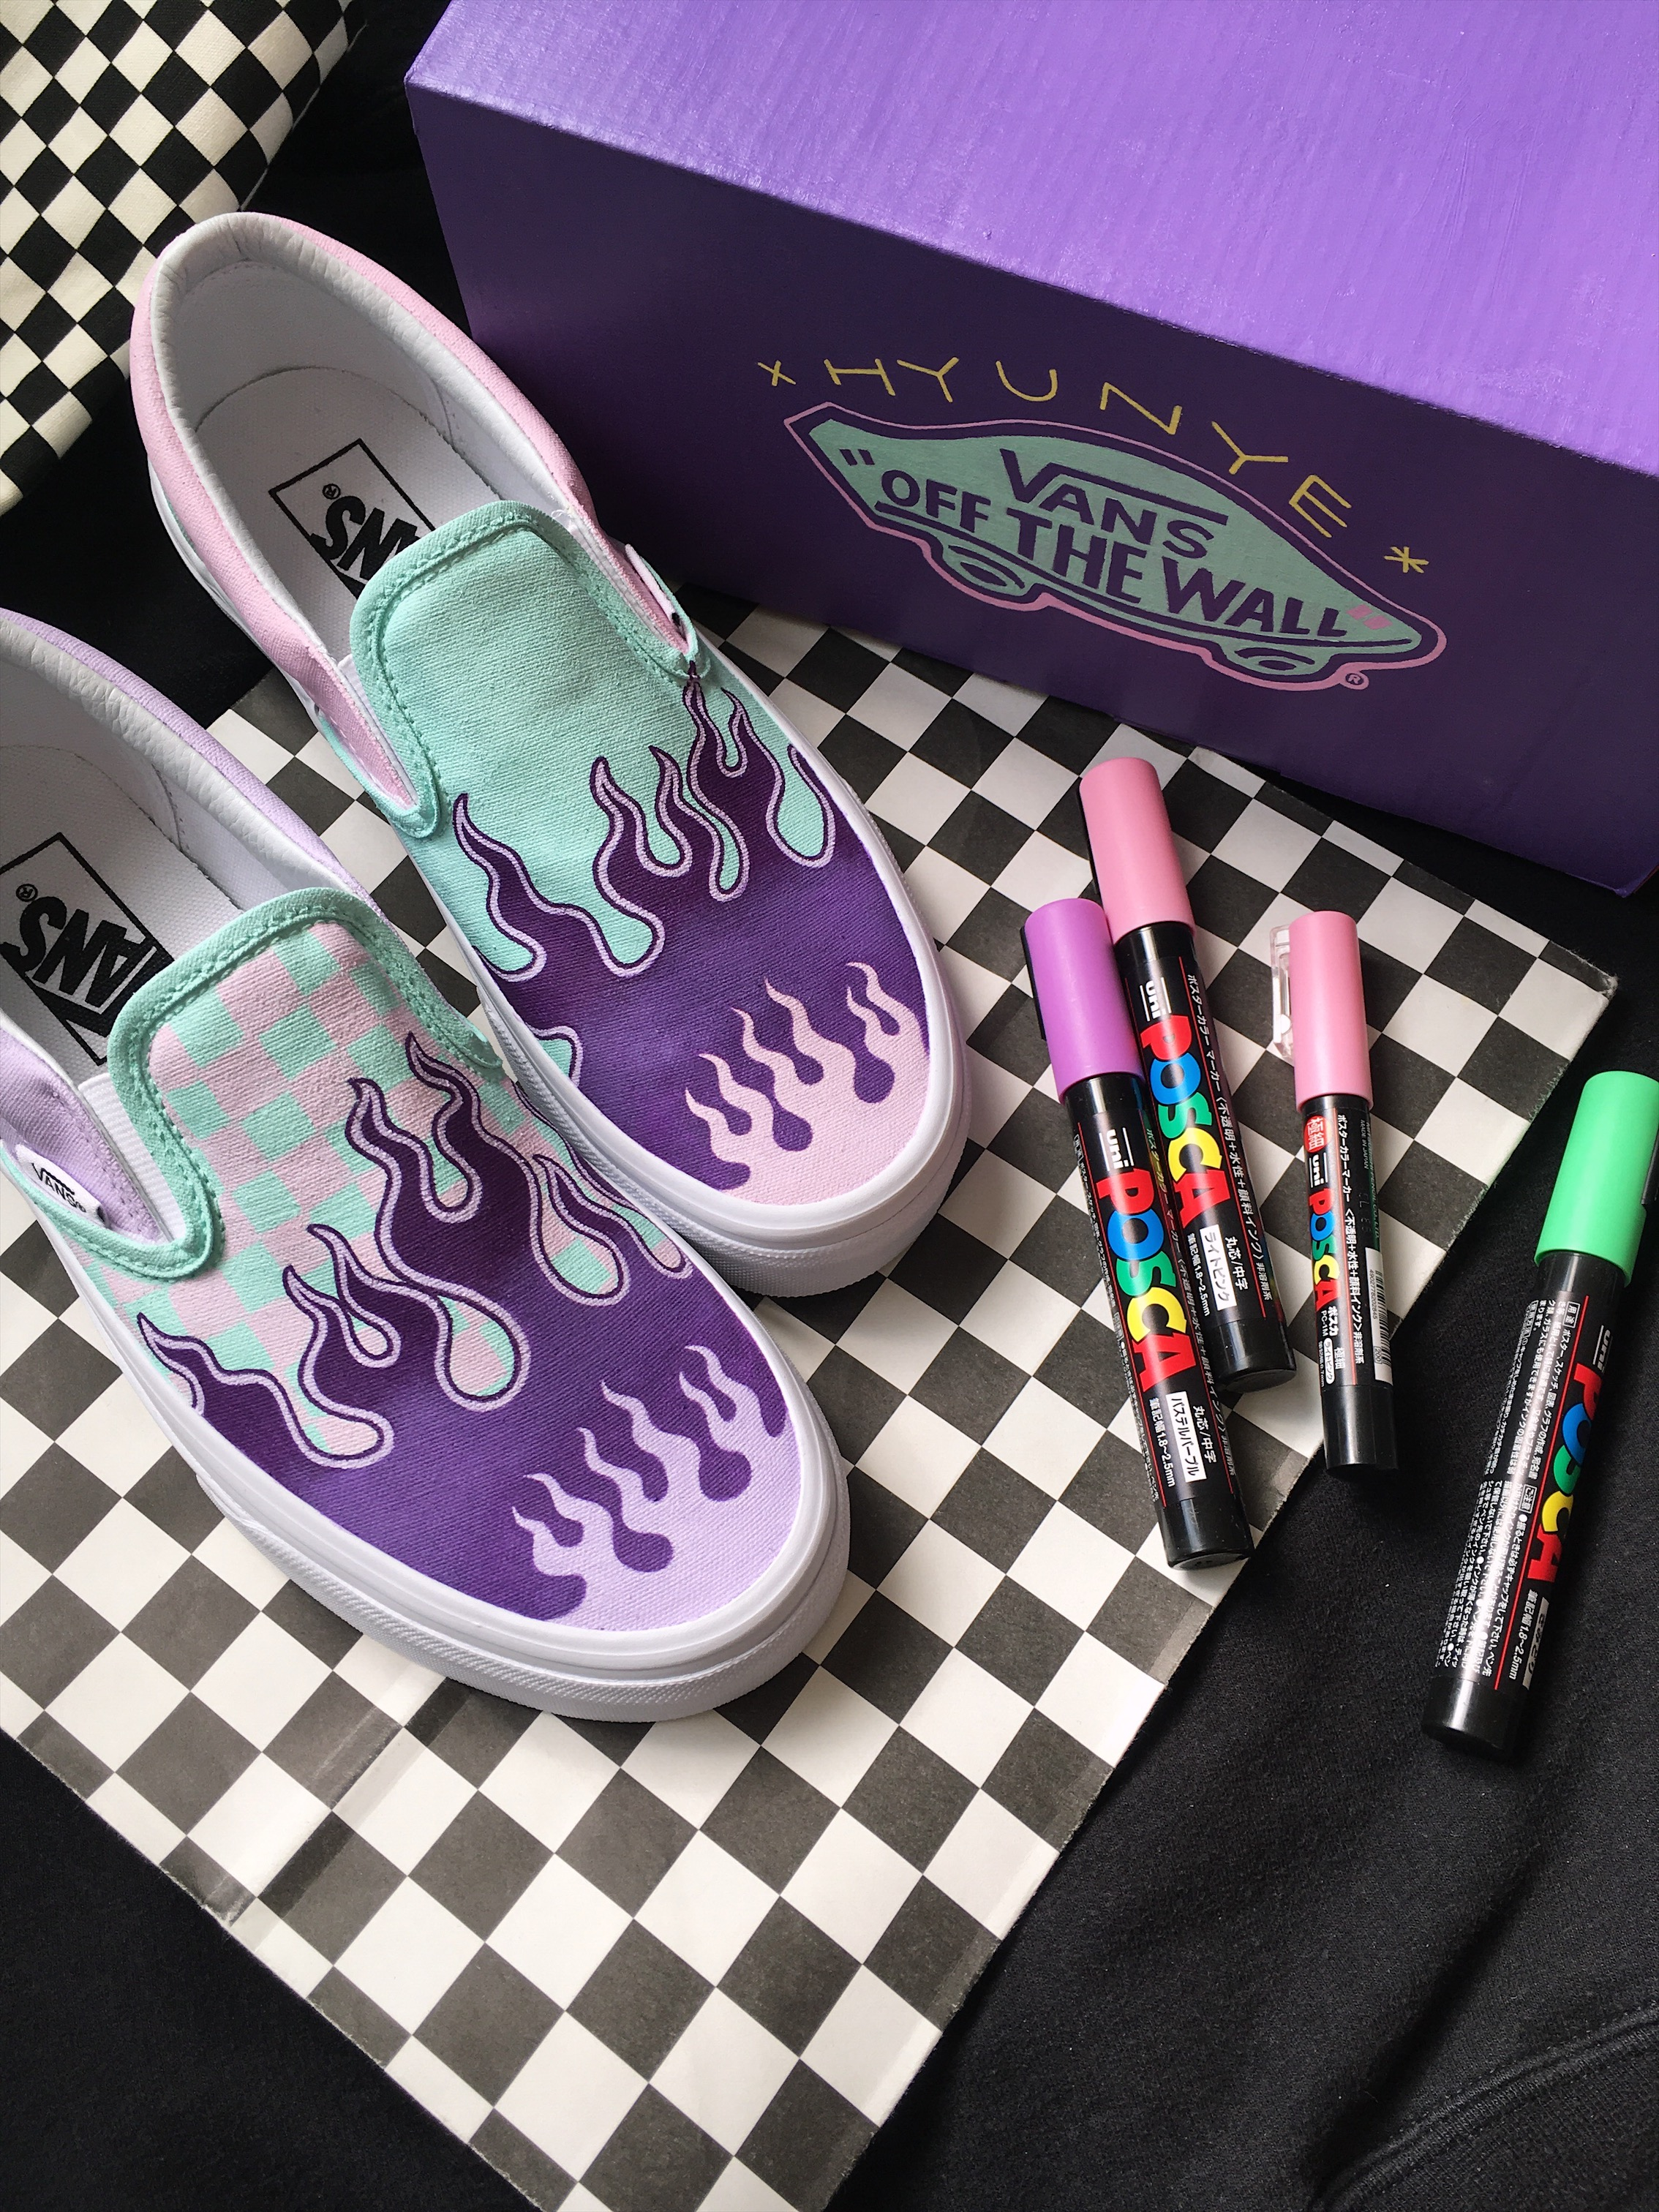 LAST CHANCE TO BRING YOUR SHOE DESIGN TO LIFE!